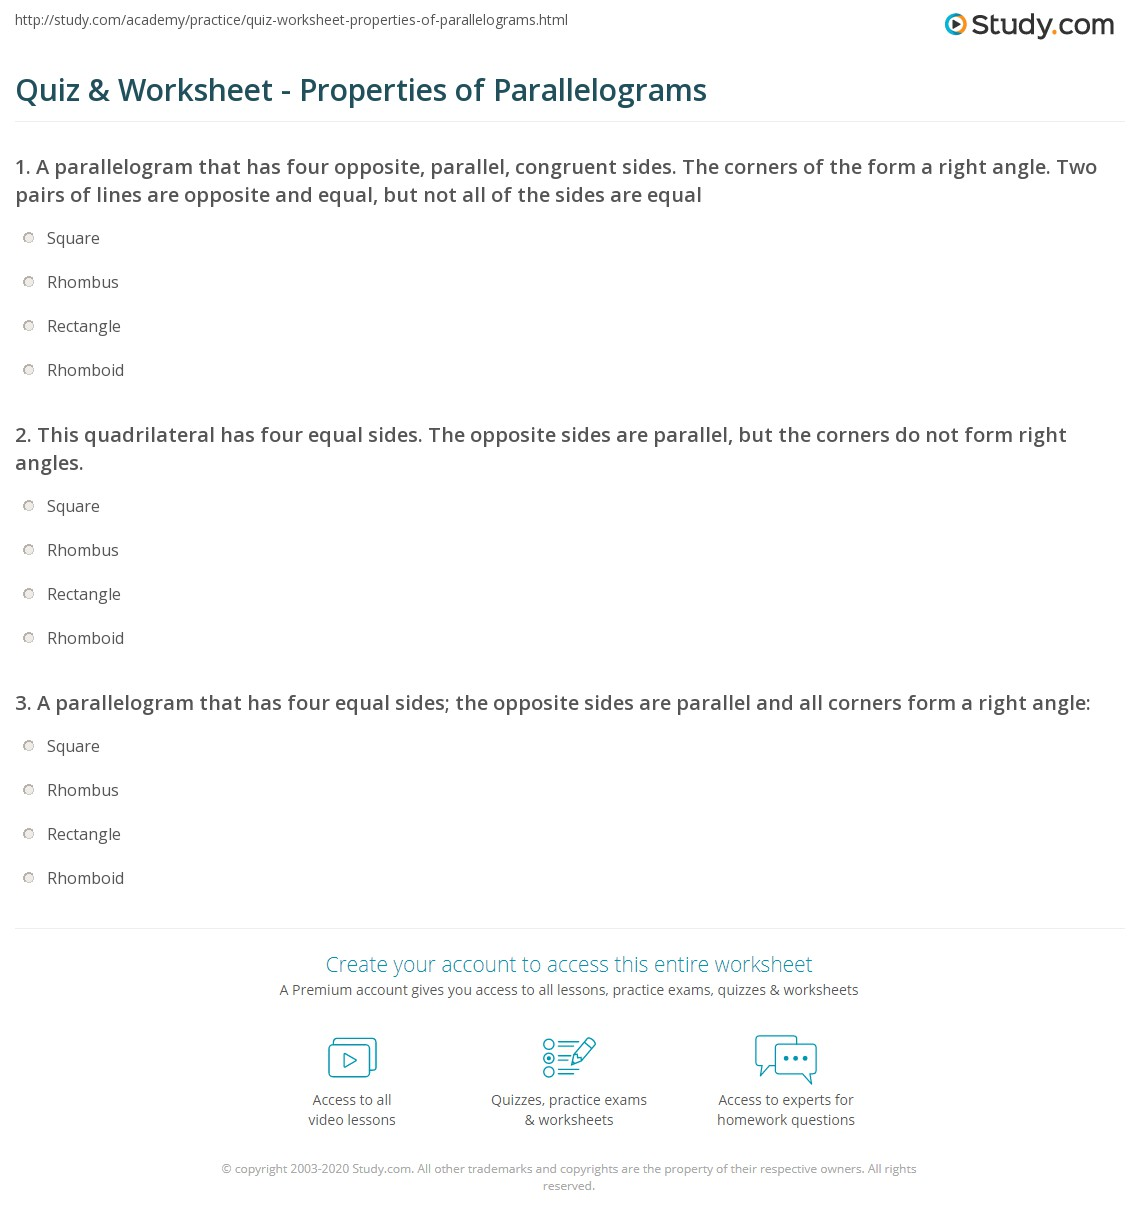 Worksheets Parallelograms Worksheet quiz worksheet properties of parallelograms study com print parallelogram in geometry definition shapes worksheet